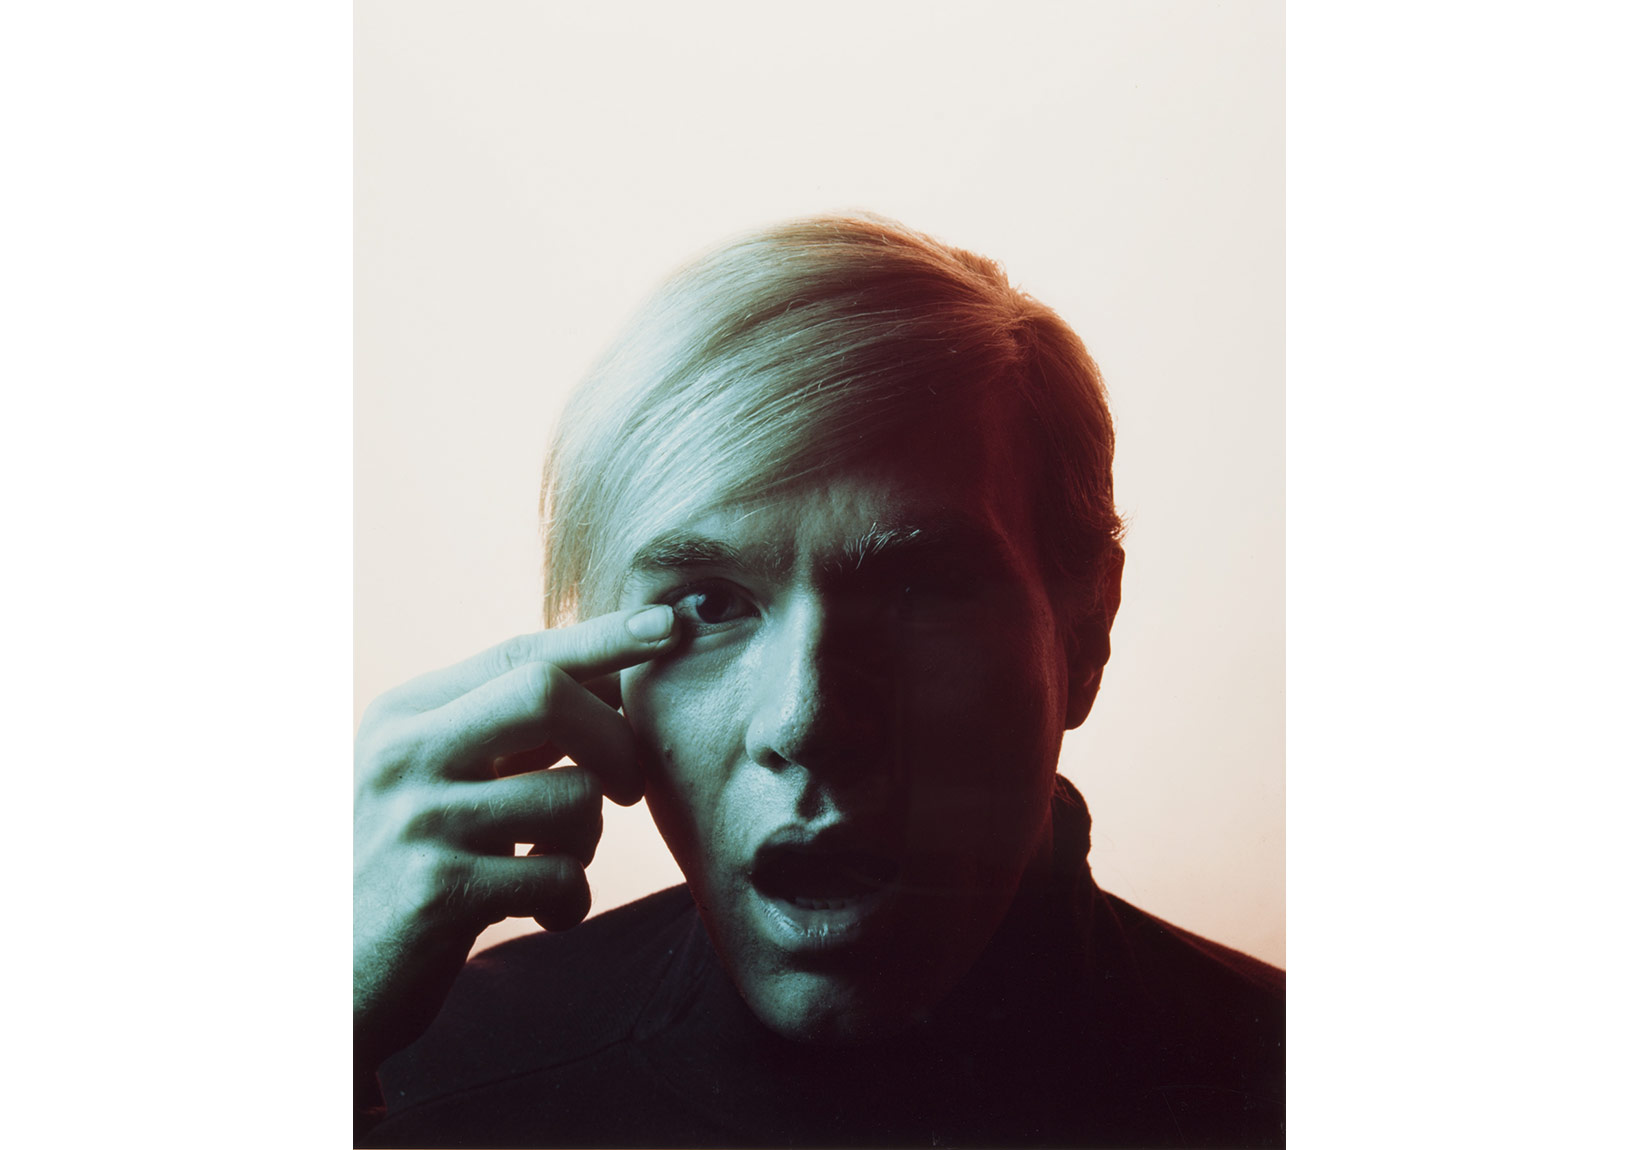 Philippe Halsman, 'Andy Warhol', 1968, Archives Philippe Halsman © 2015 Philippe Halsman Archive/Magnum Photos